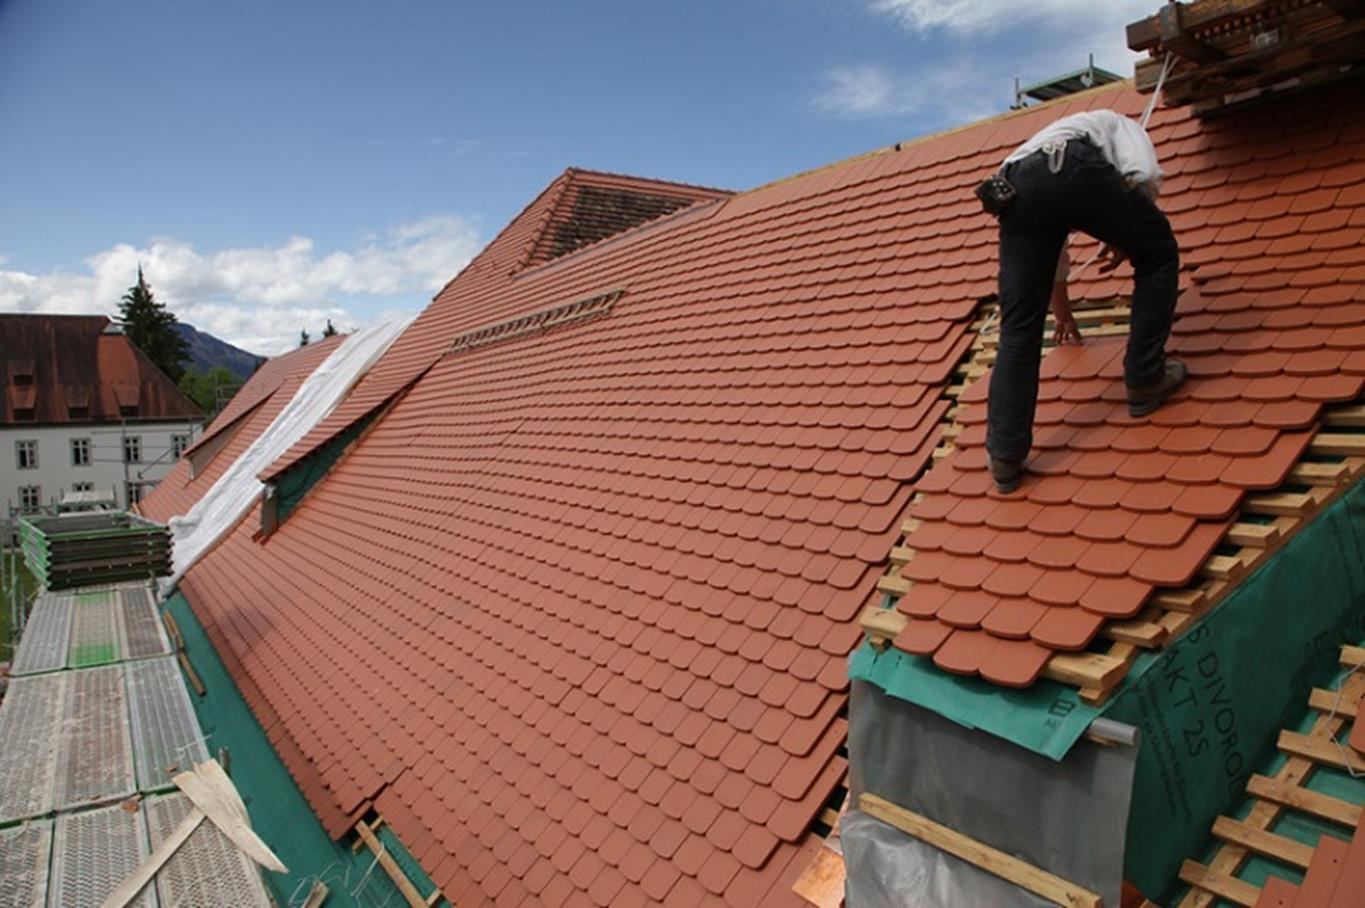 Trader working on a pitched roof